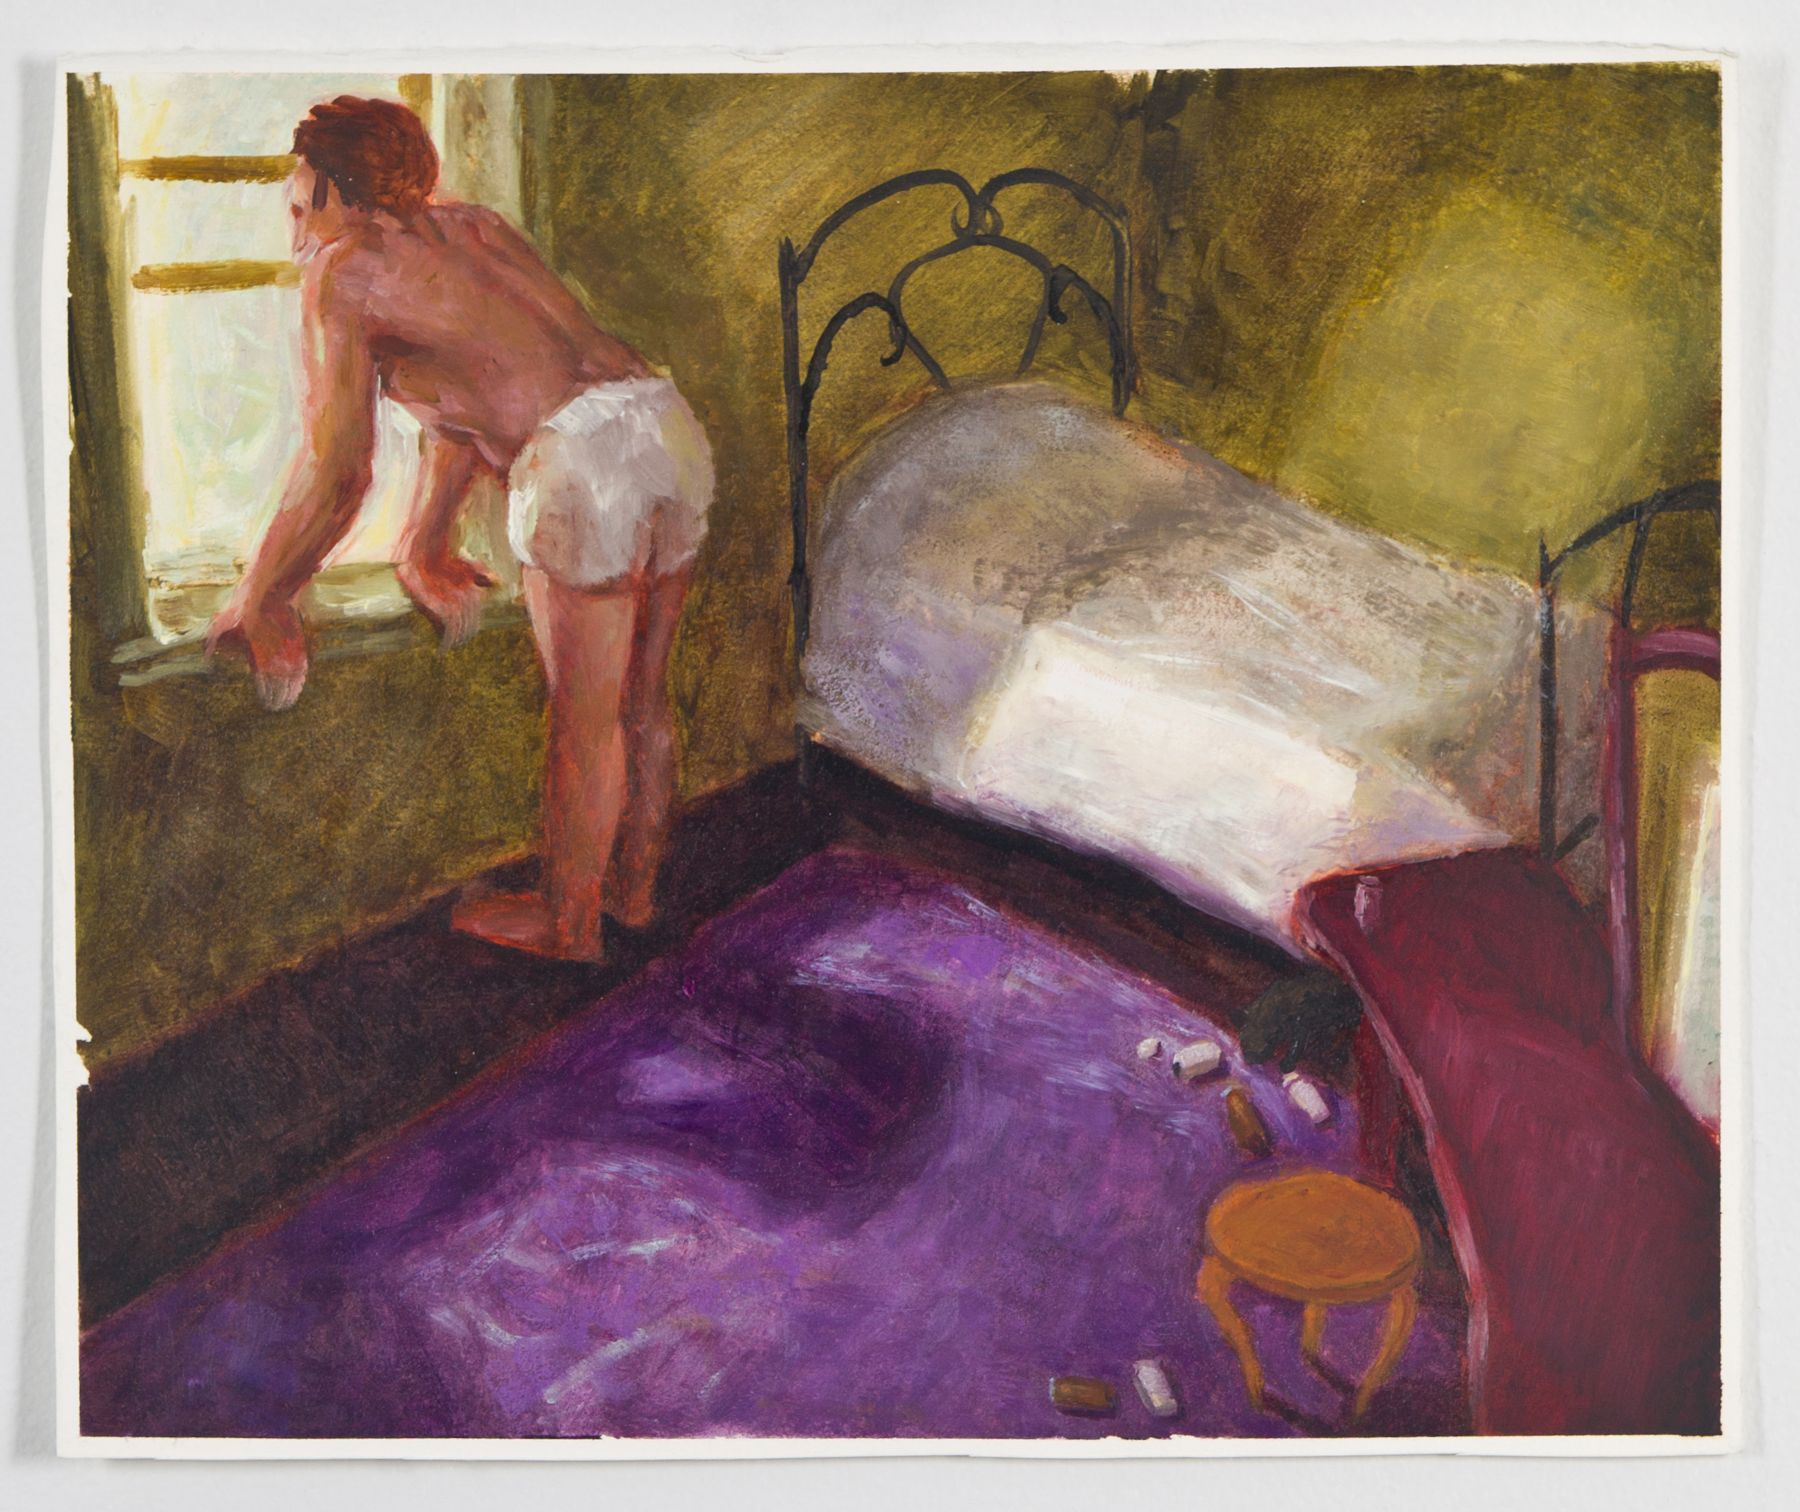 Purple Rug, 1990, Oil on gessoed paper